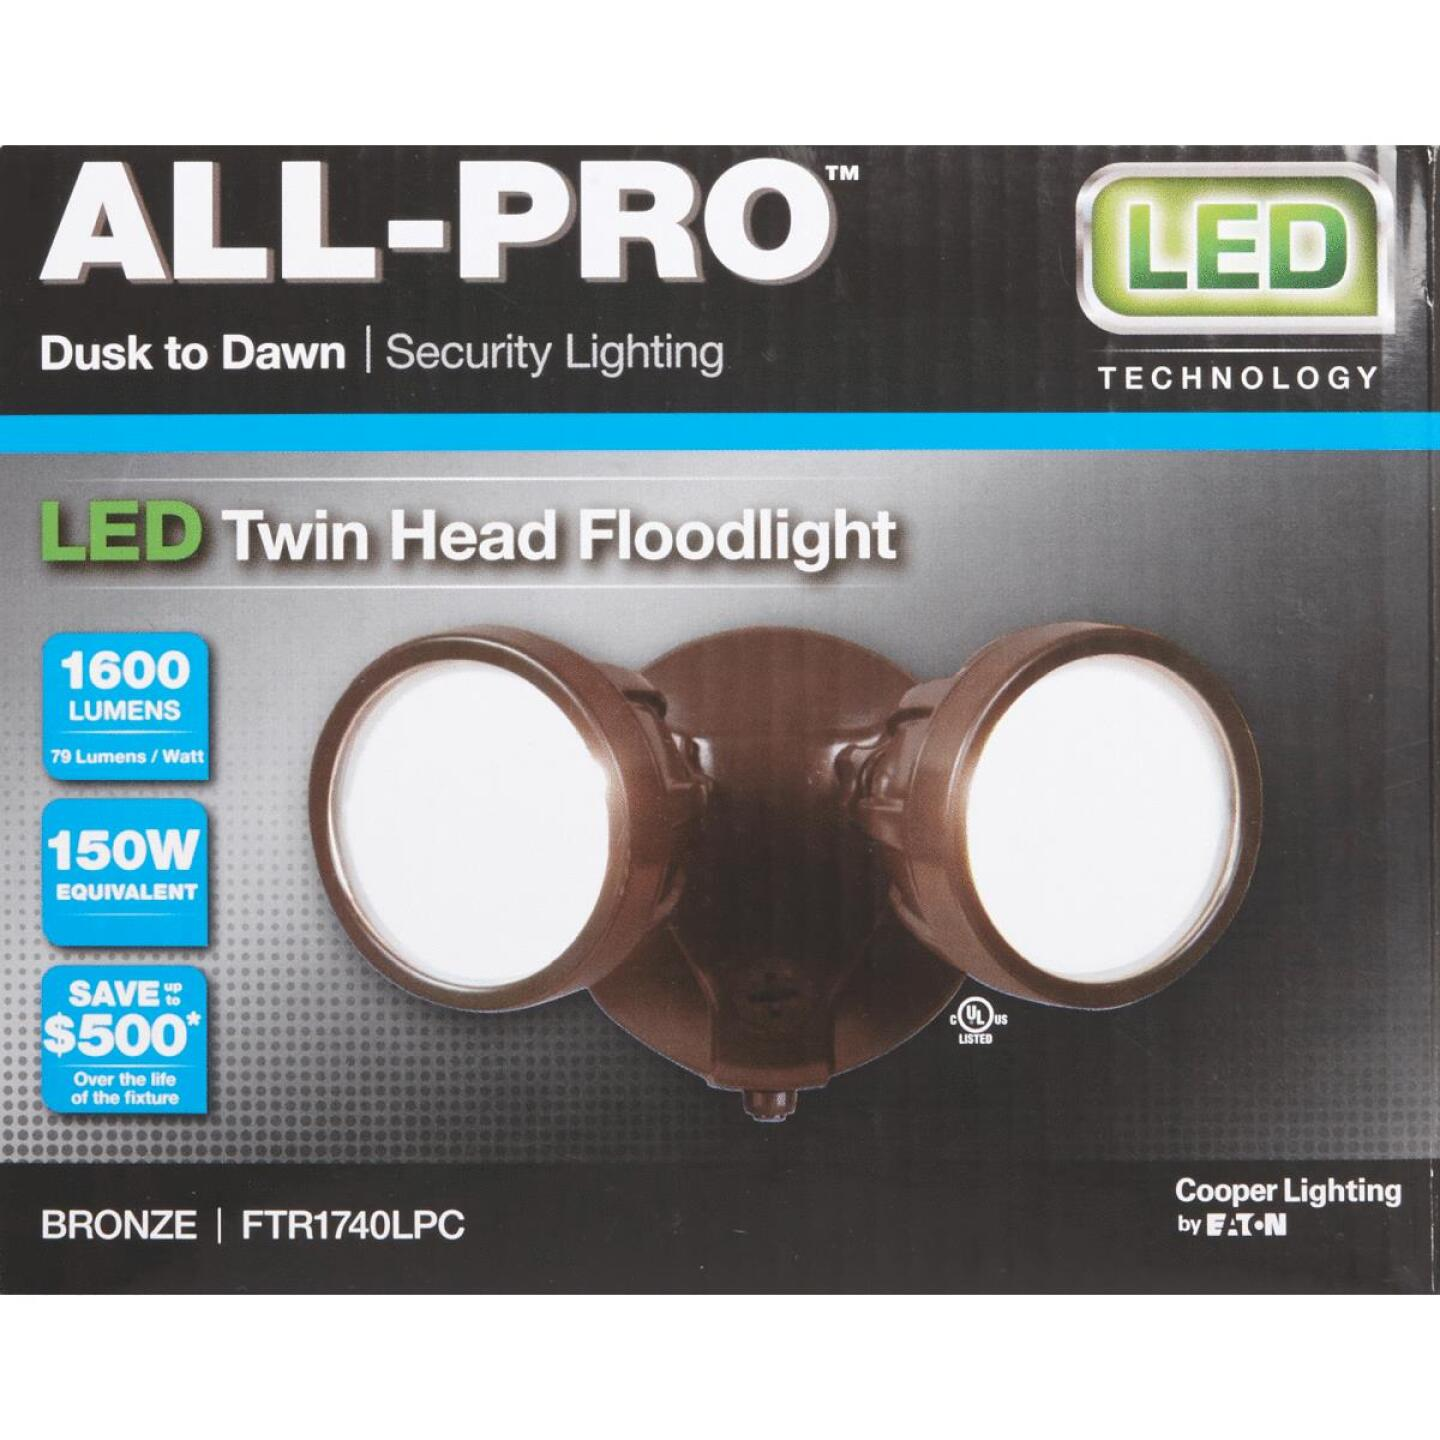 All-Pro Bronze Dusk To Dawn LED Floodlight Fixture Image 2